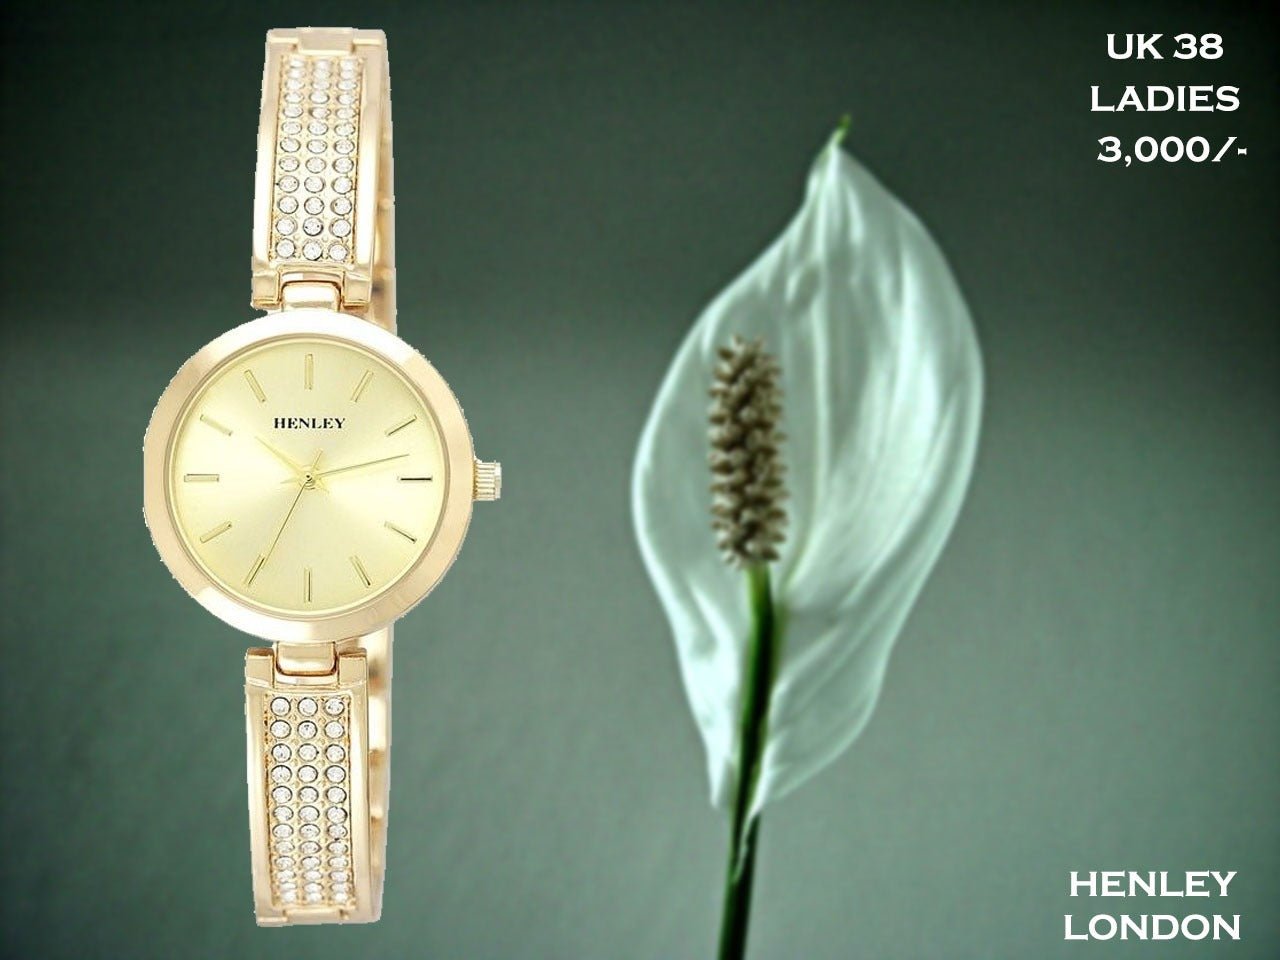 Henley London Exclusive Ladies Timepiece UK 38